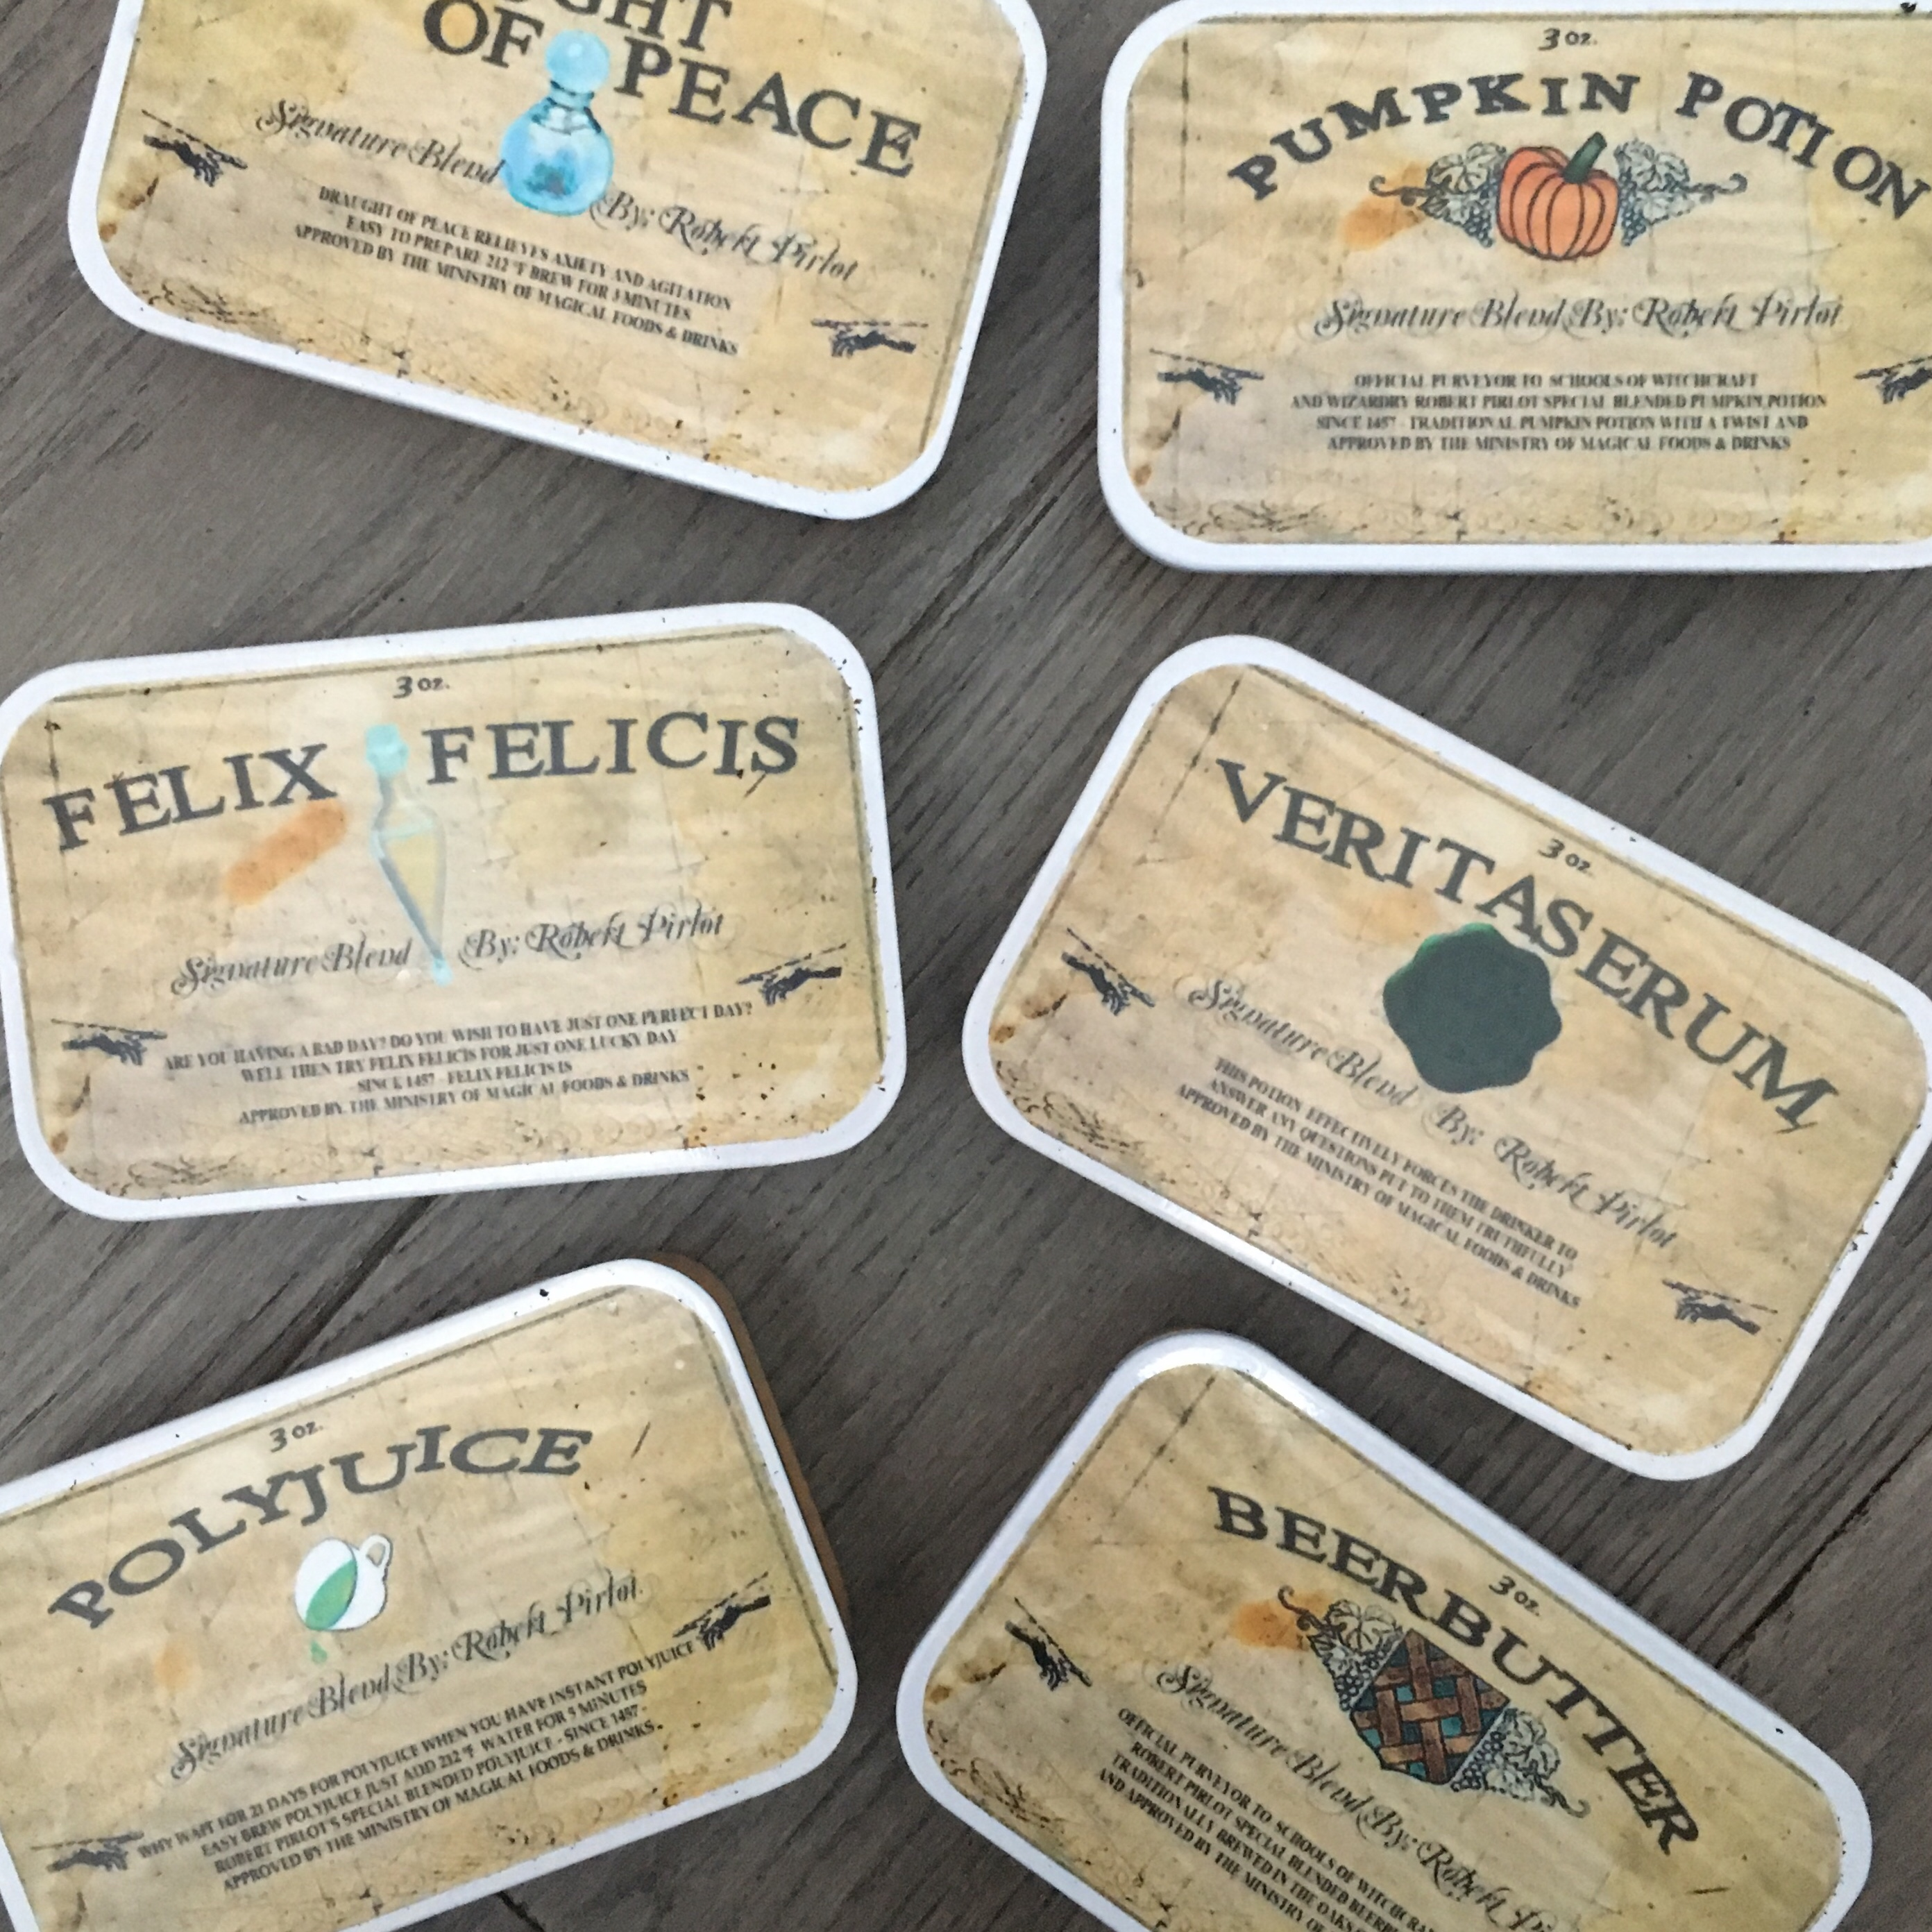 Harry Potter themed tea by Adagio